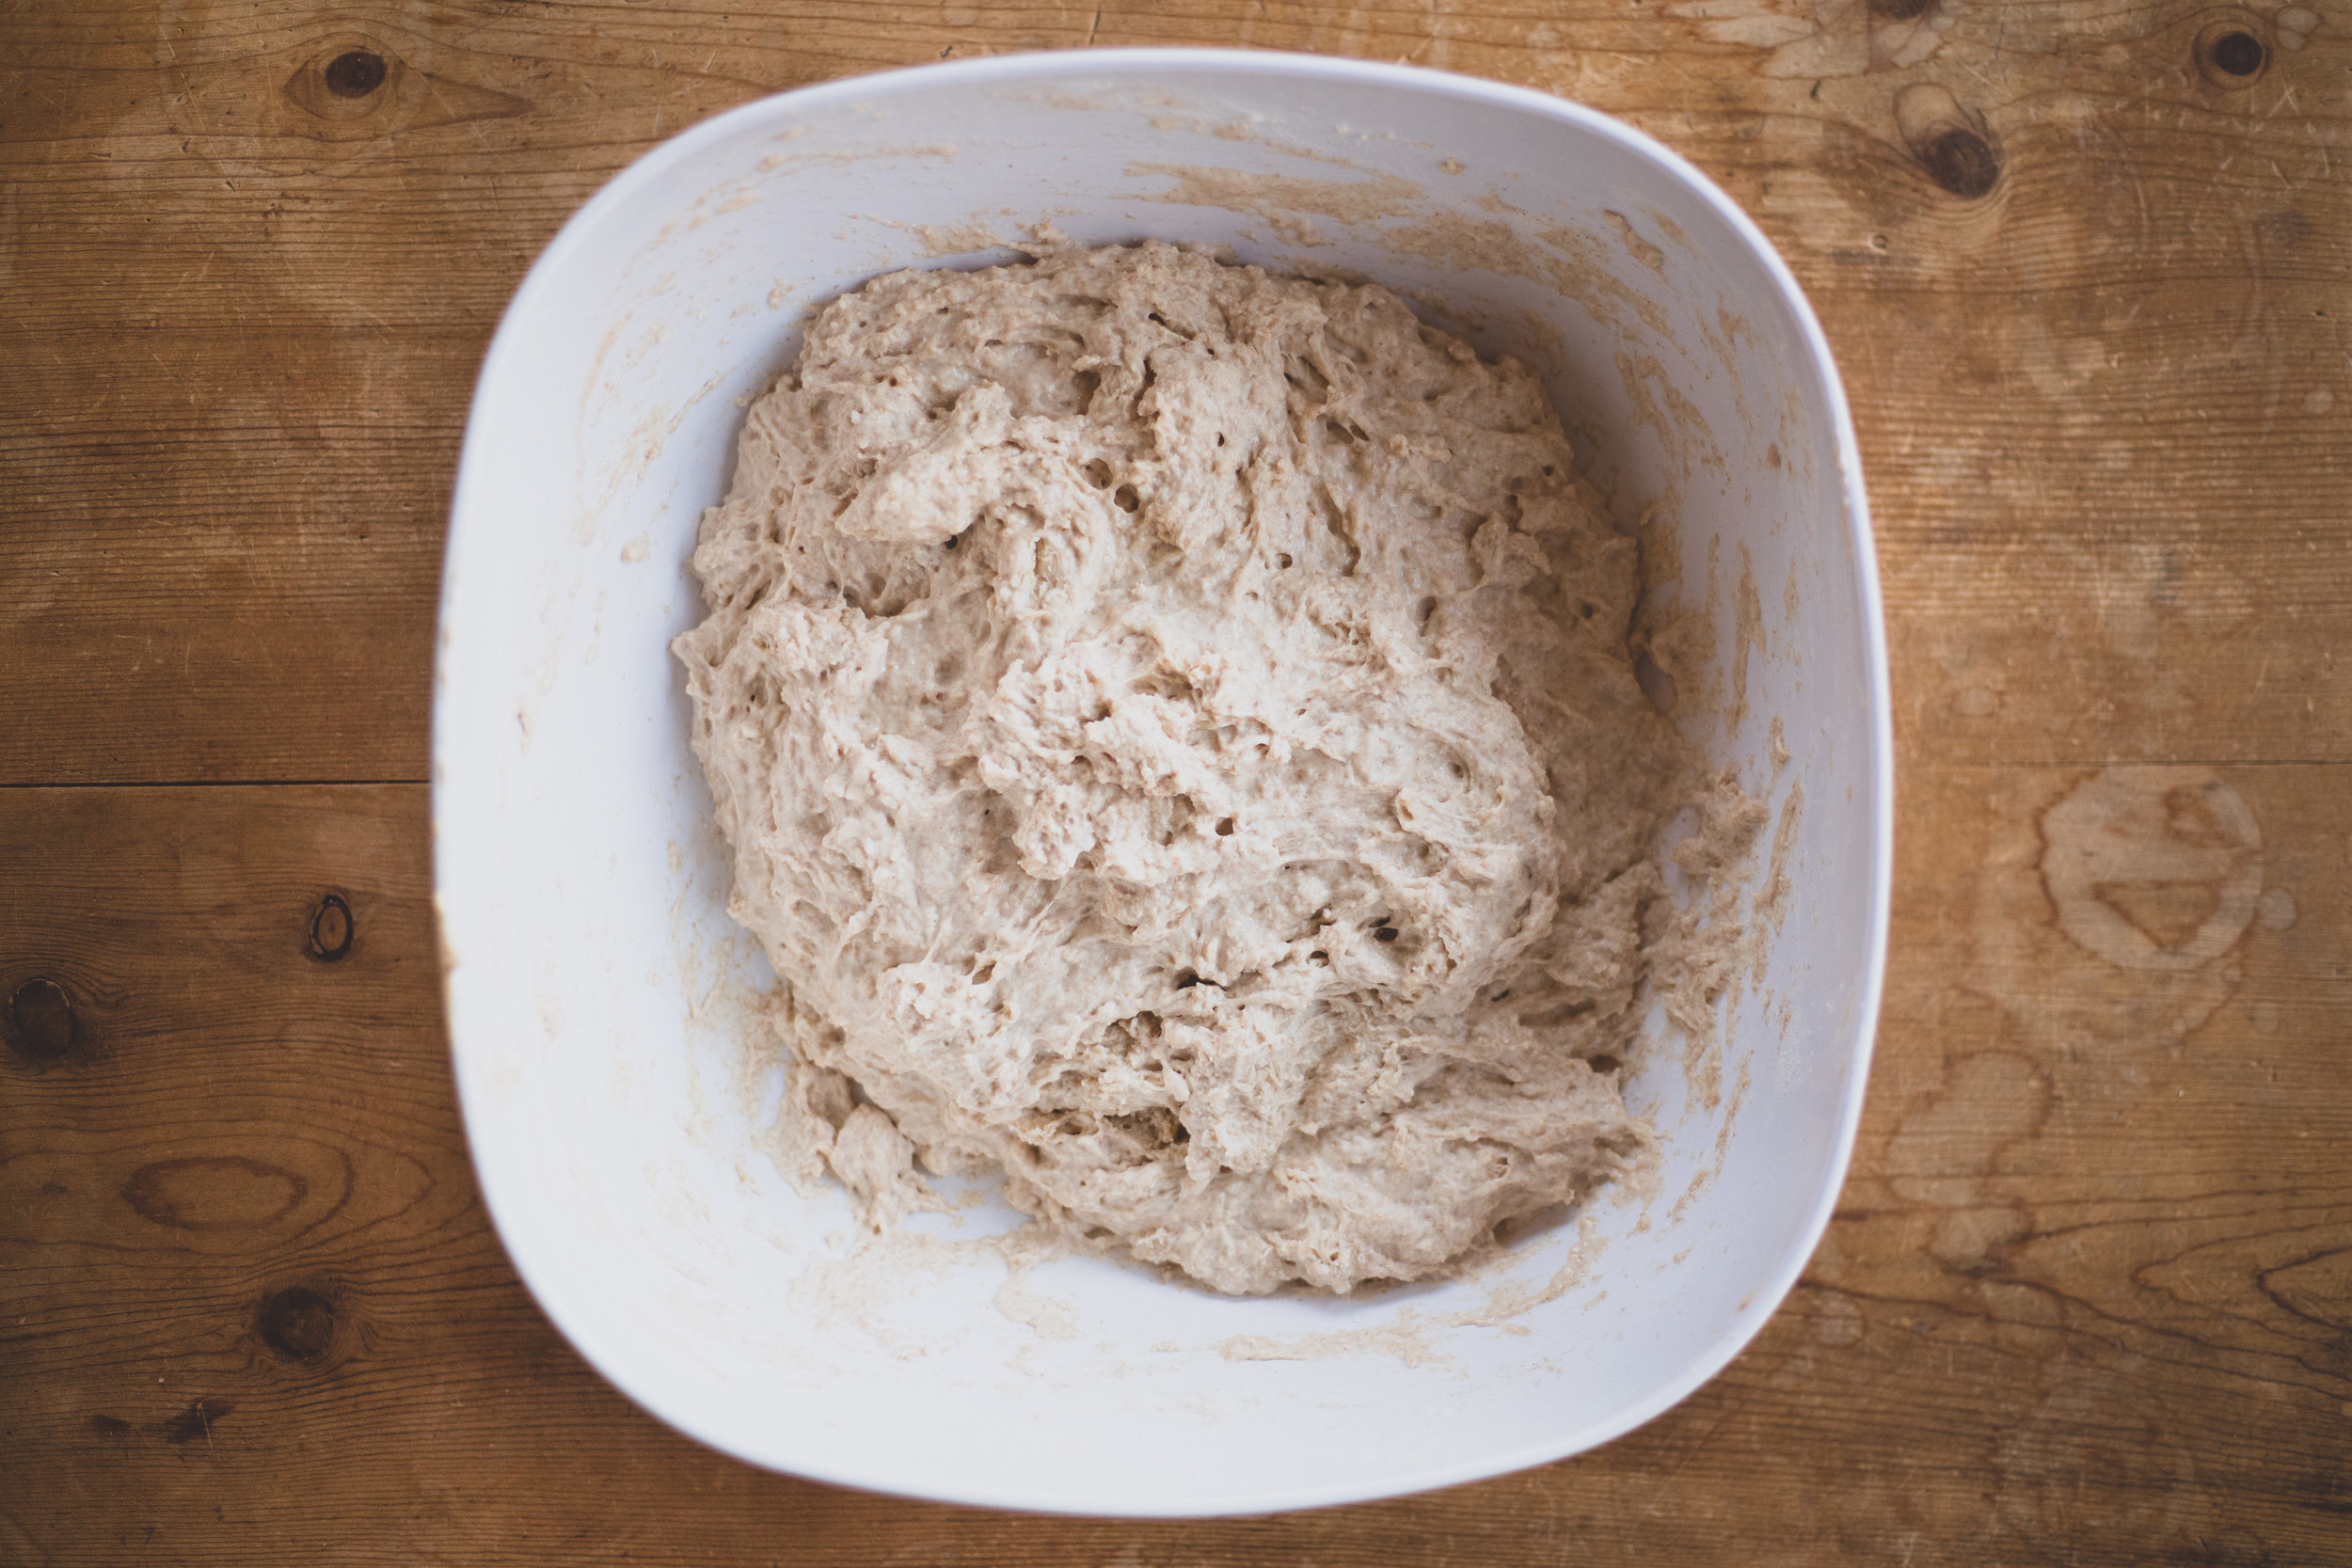 After initially mixing the dough together.